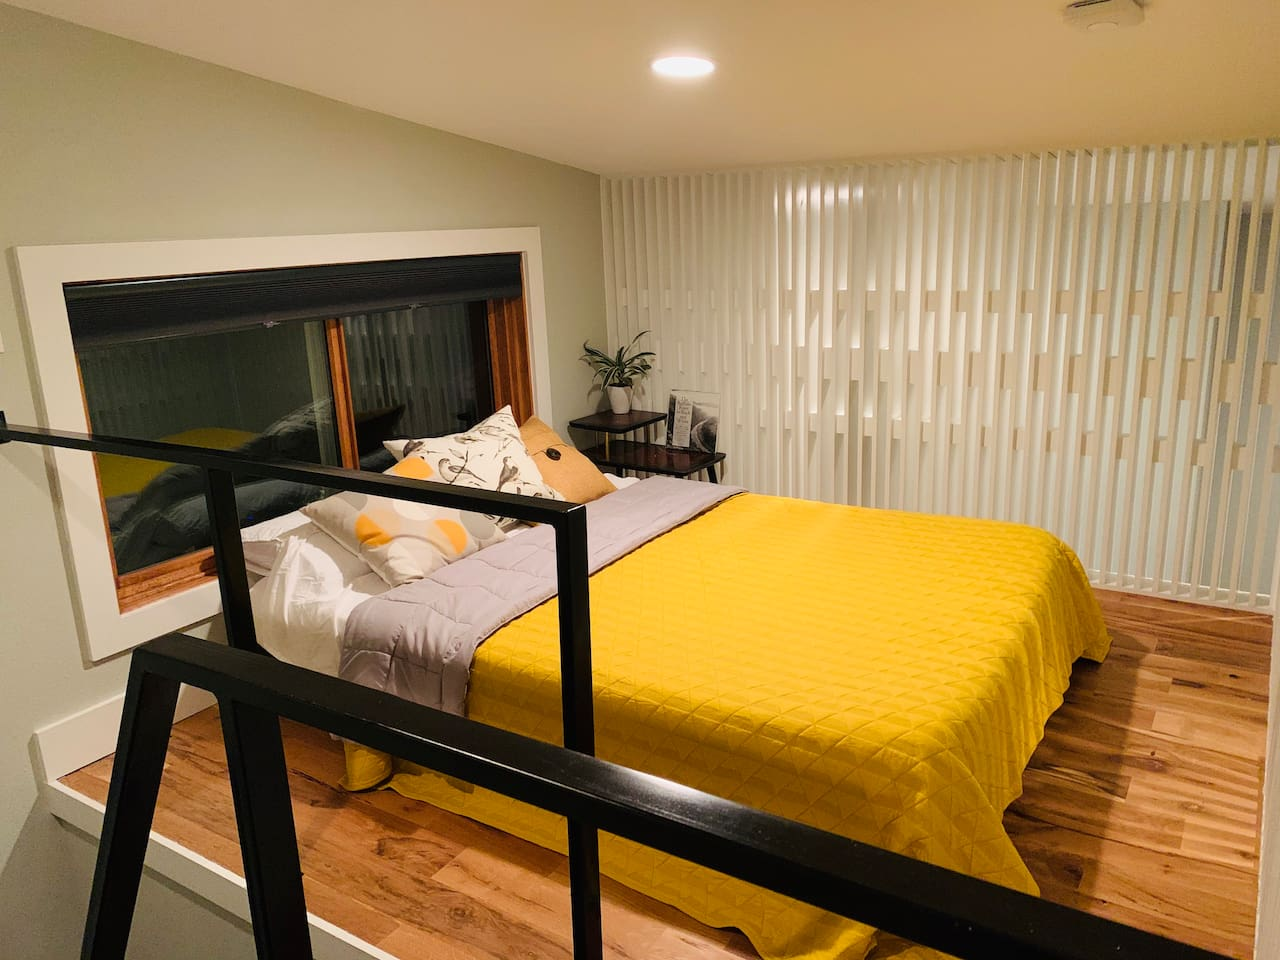 """Birdhouse loft """"The Birdnest"""" is just completed and provides a cozy nook with a queen memory foam mattress and black out blinds on the screened window for a comfortable nights sleep."""